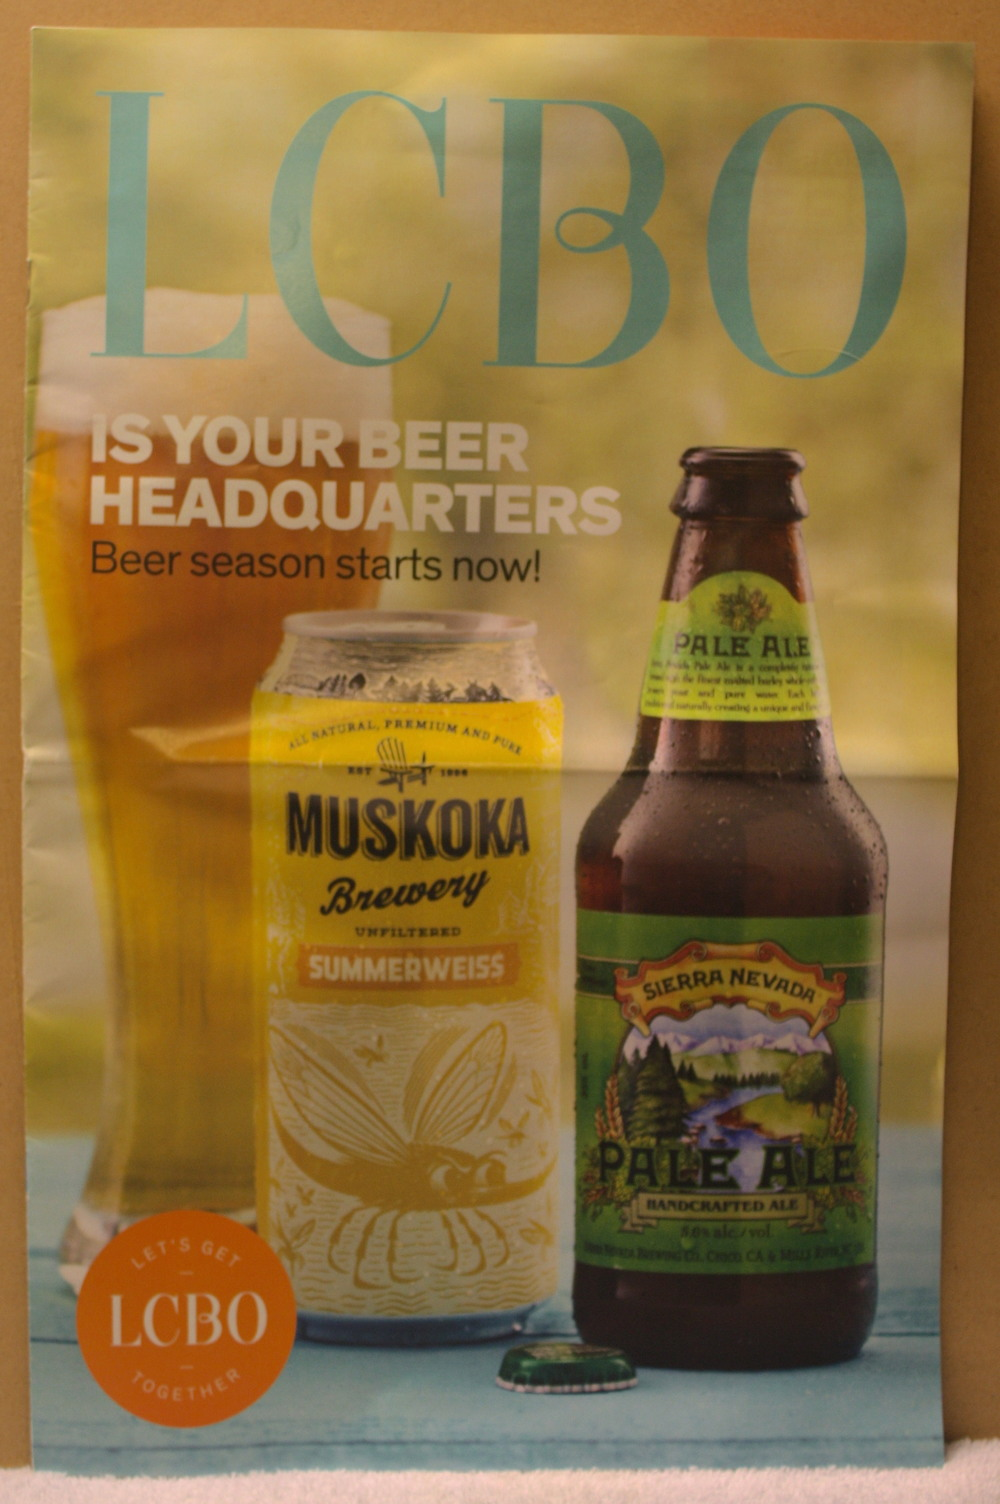 LCBO Is Your Beer Headquarters (June 2015)